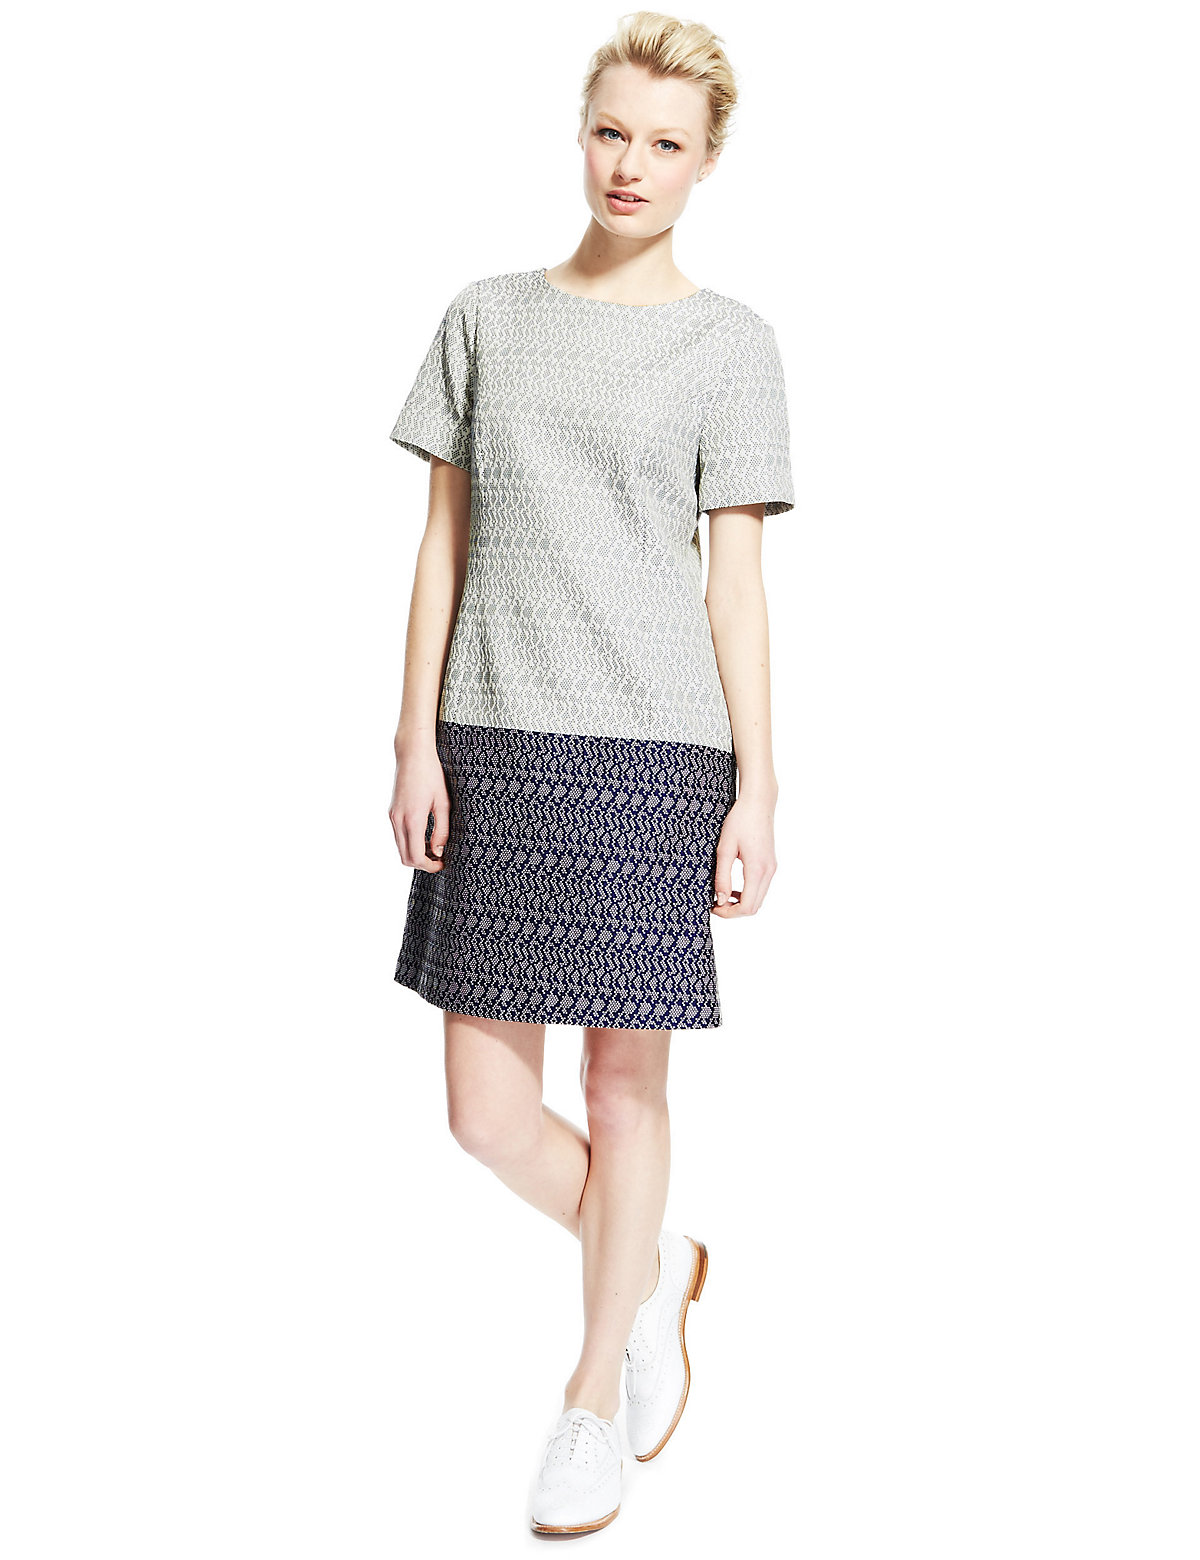 M & S Collection Best of British Jacquard Dot Shift Dress with Silk